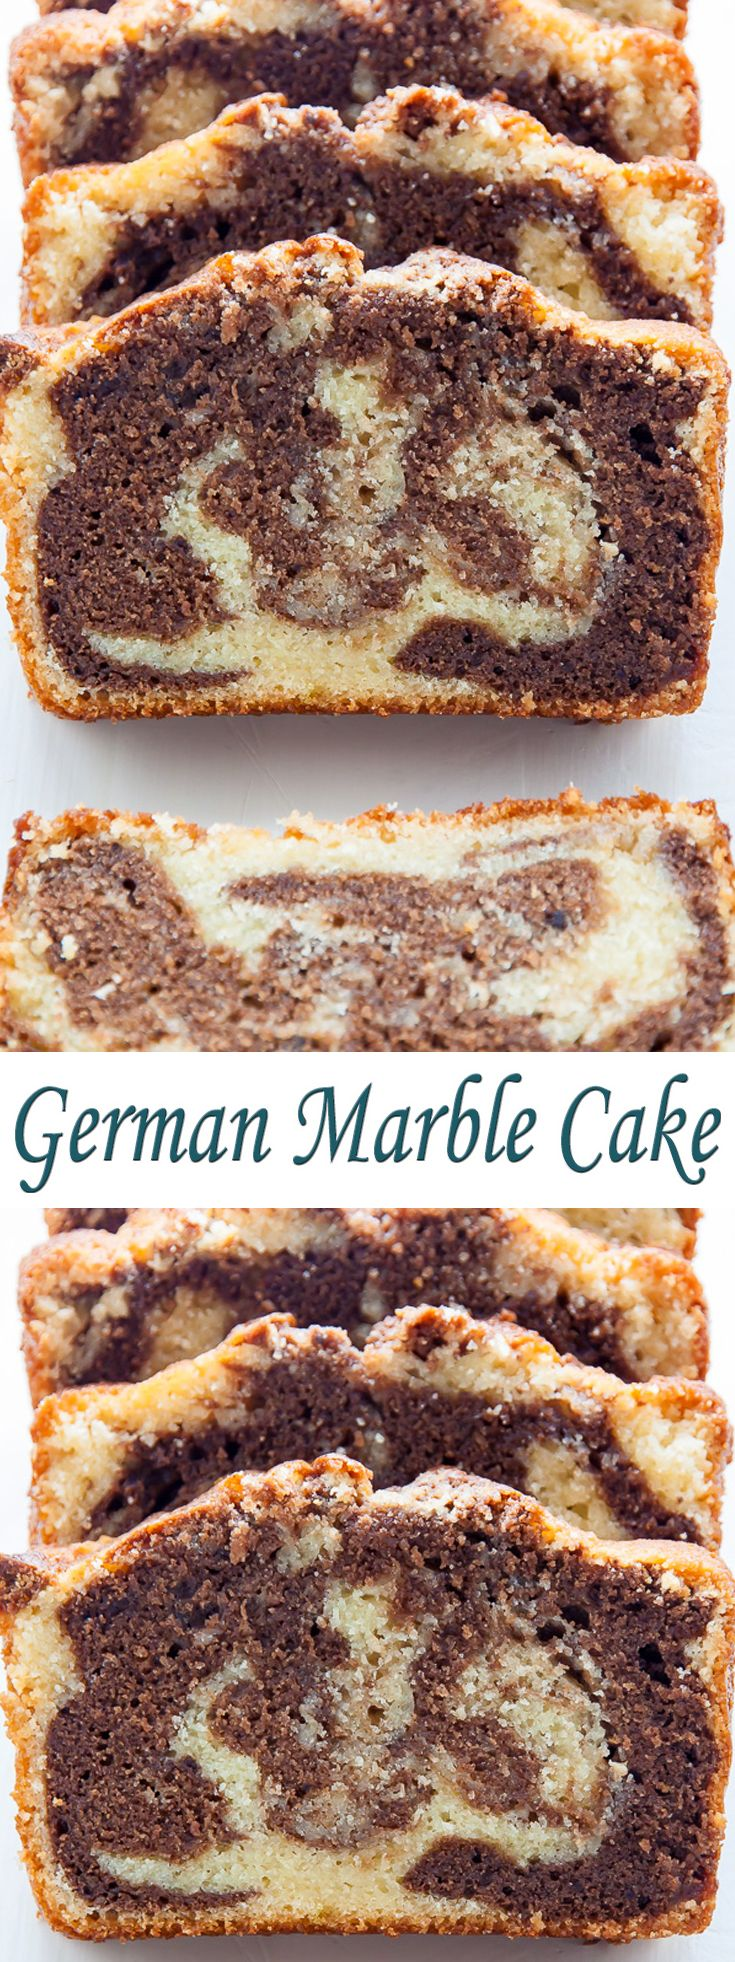 German Marble Cake. #CompleteRecipes #recipe #recipes #food #foodgasm #cleaneating #healthyfood #healthy #healthyrecipes